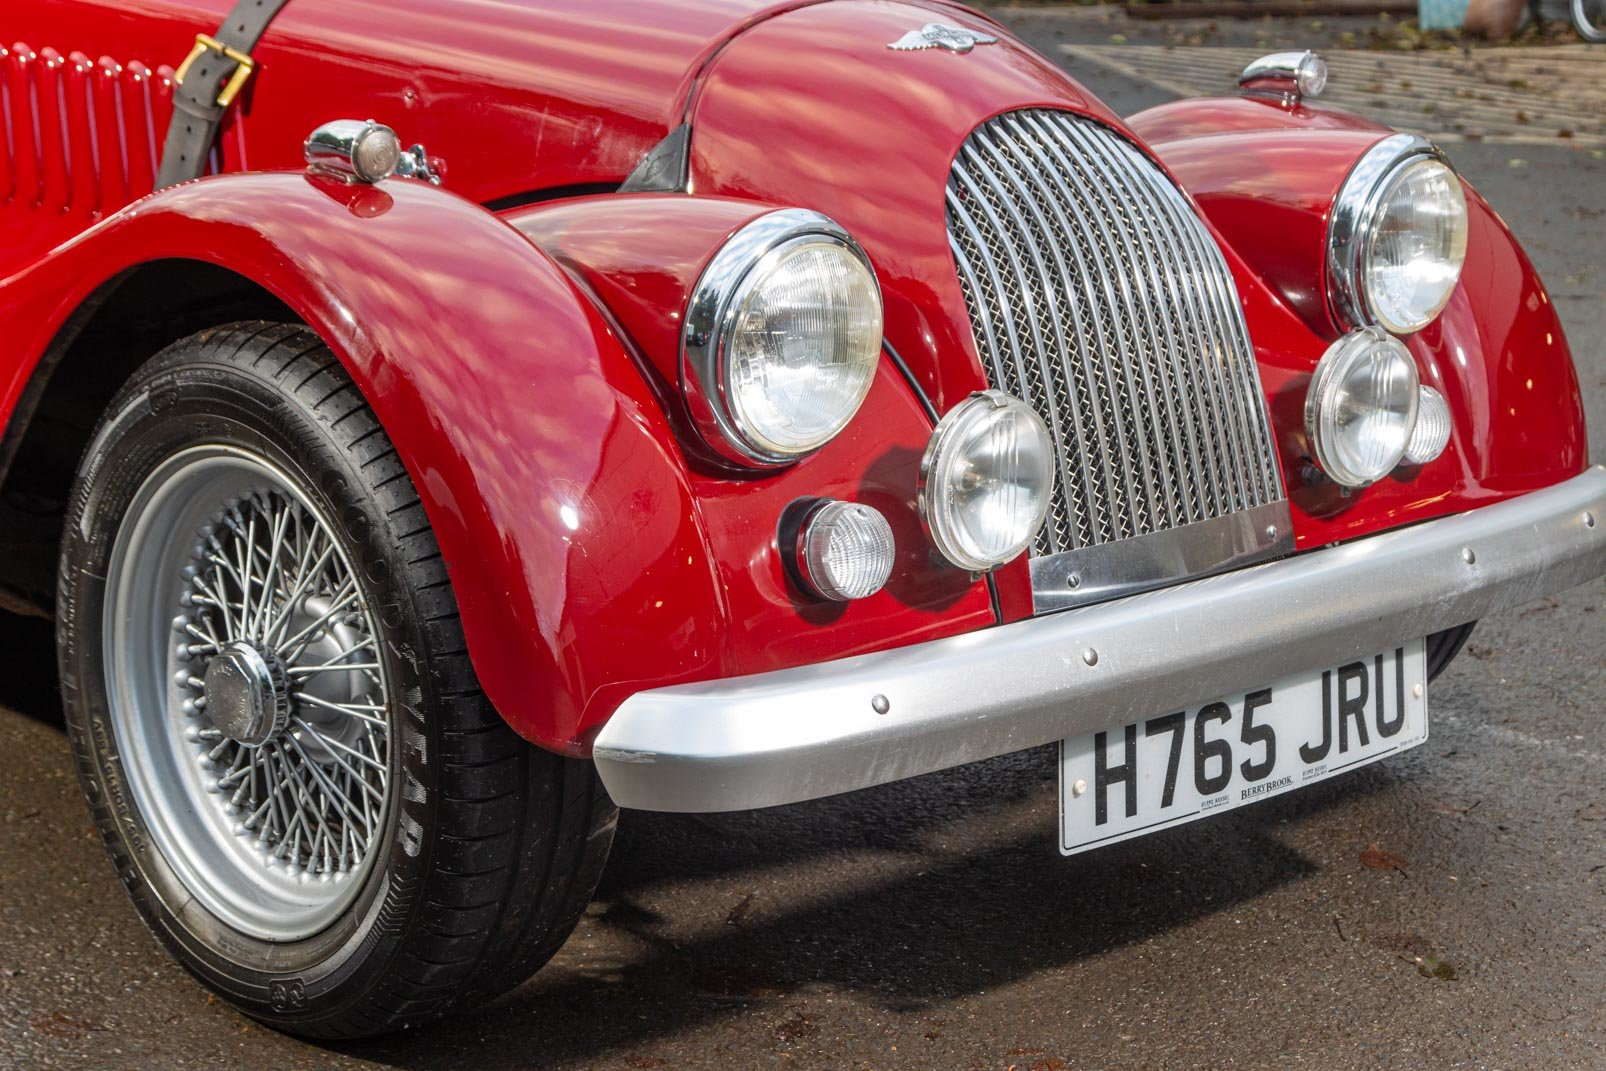 1991 Morgan Plus 4 4 seater For Sale (picture 6 of 6)